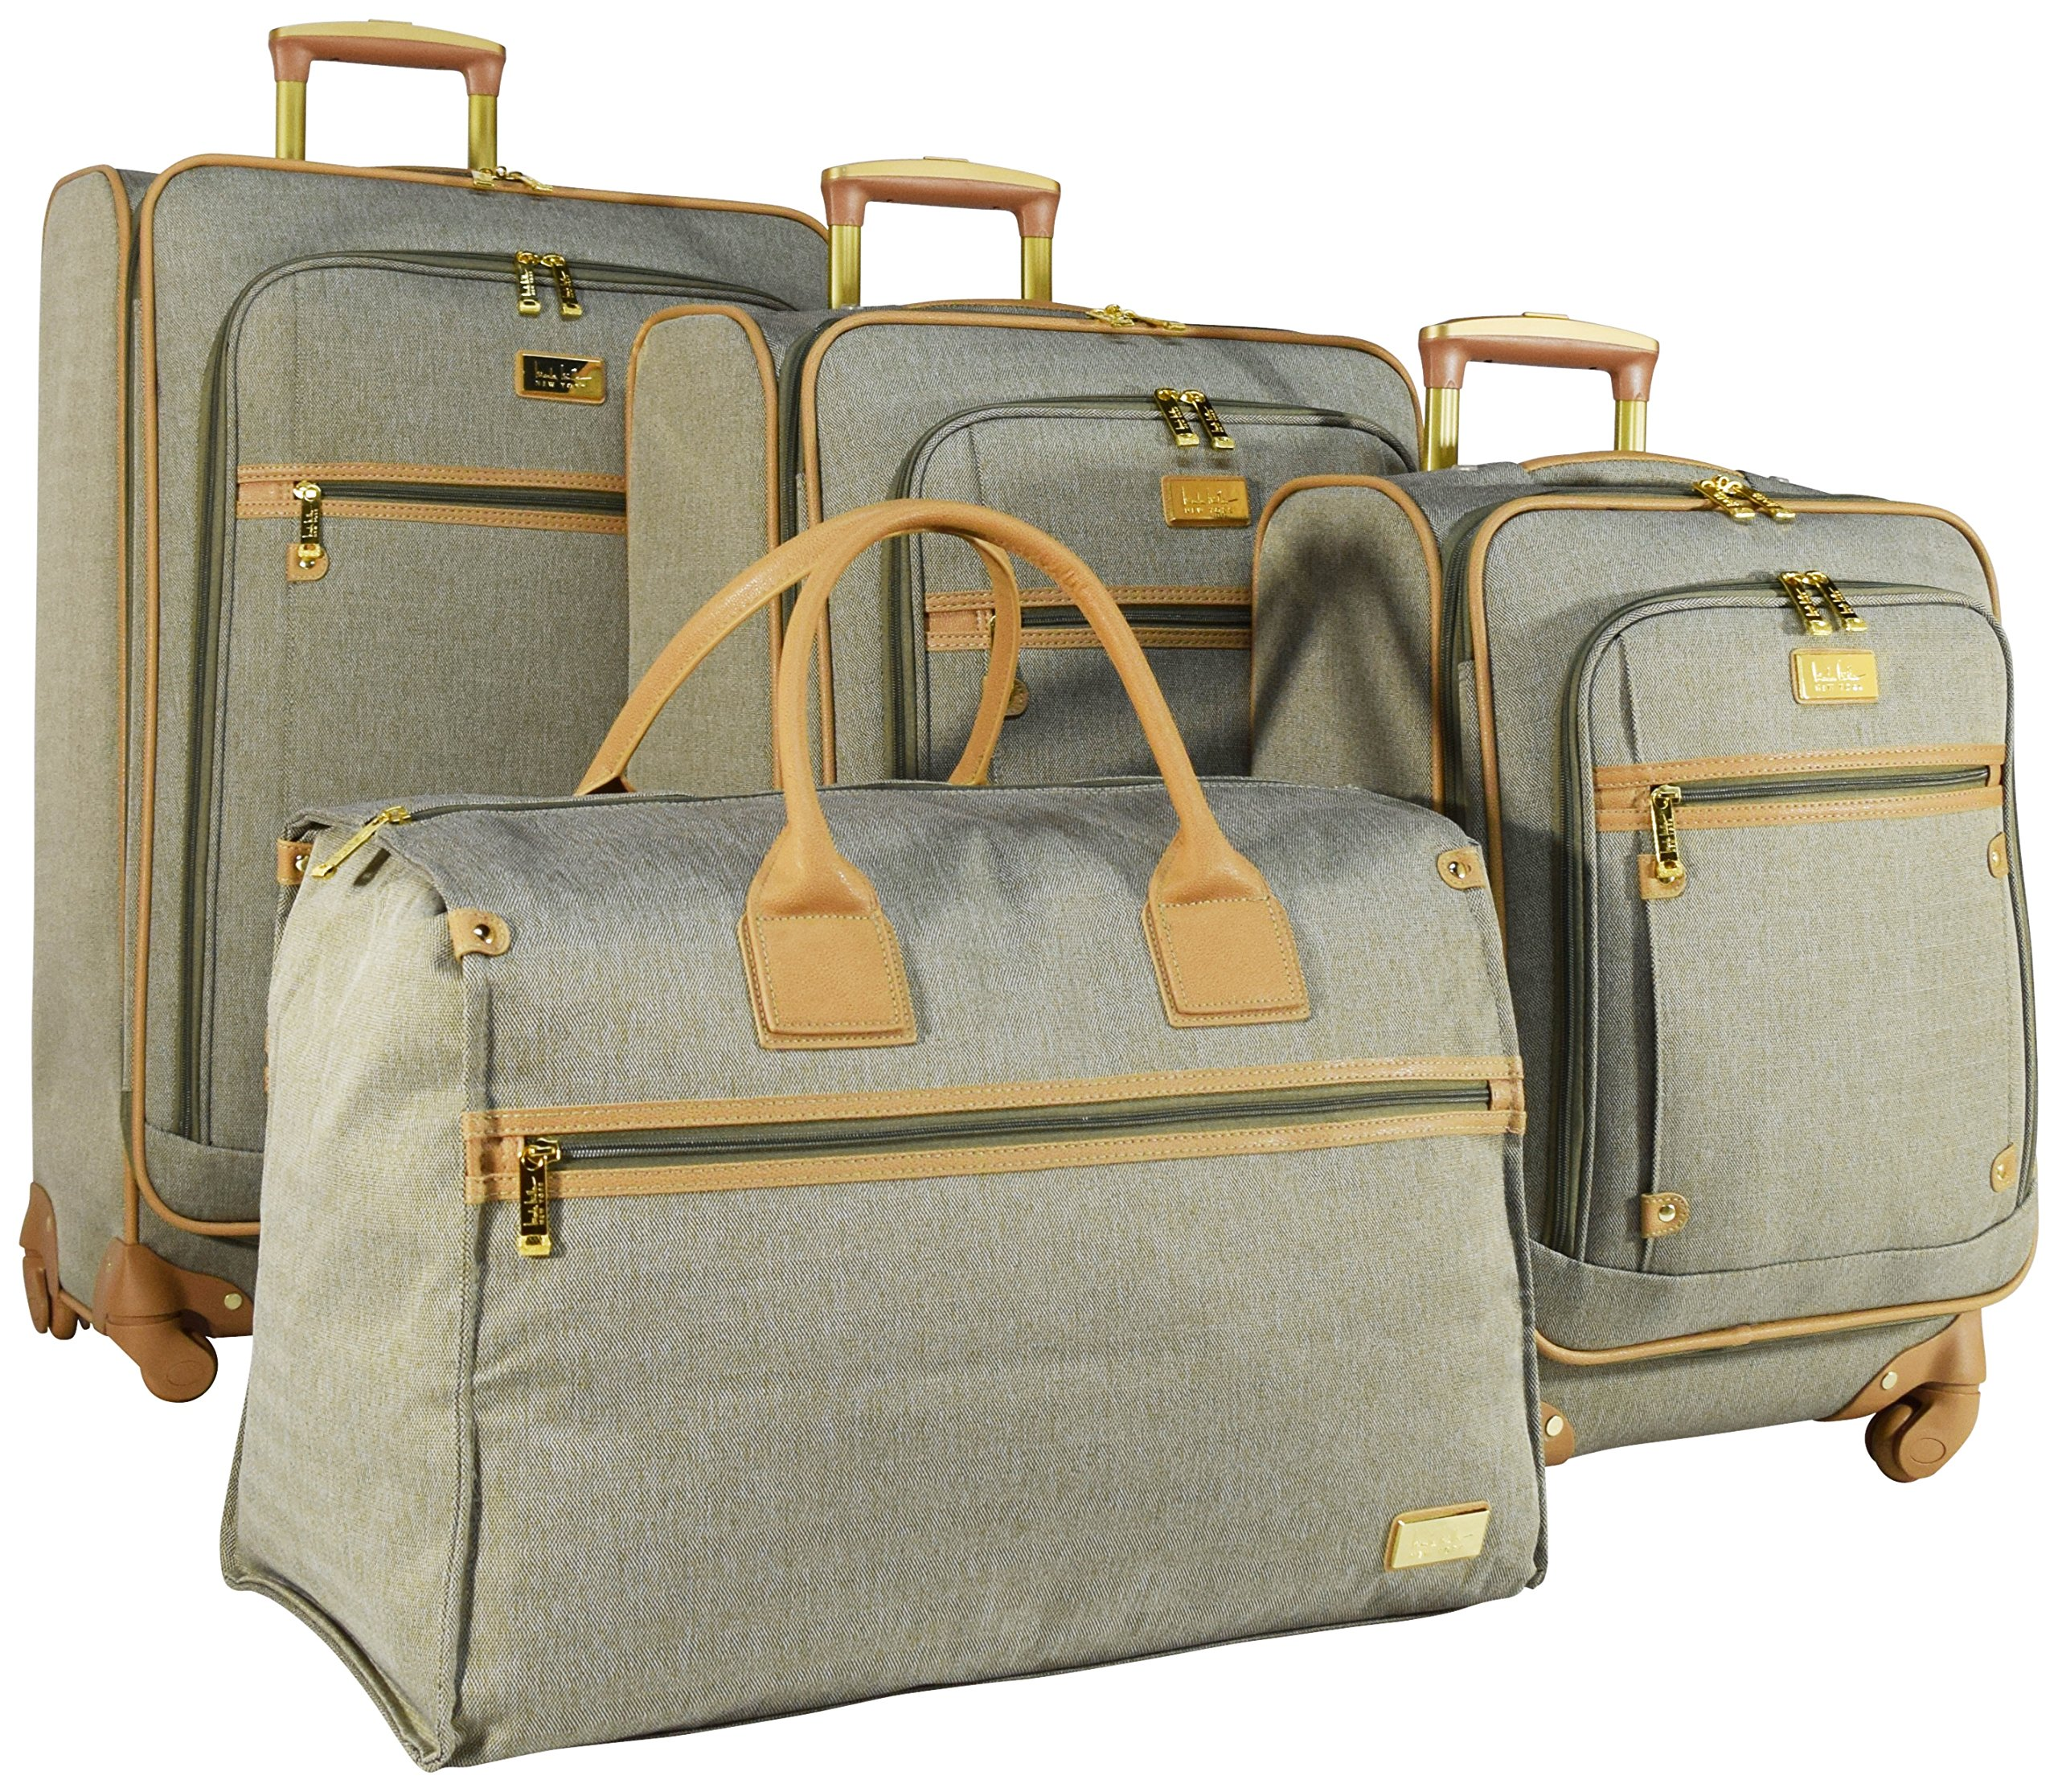 Nicole Miller New York Taylor Set of 4: Box Bag, 20'', 24'', 28'' Expandable Spinner Luggages (Green)